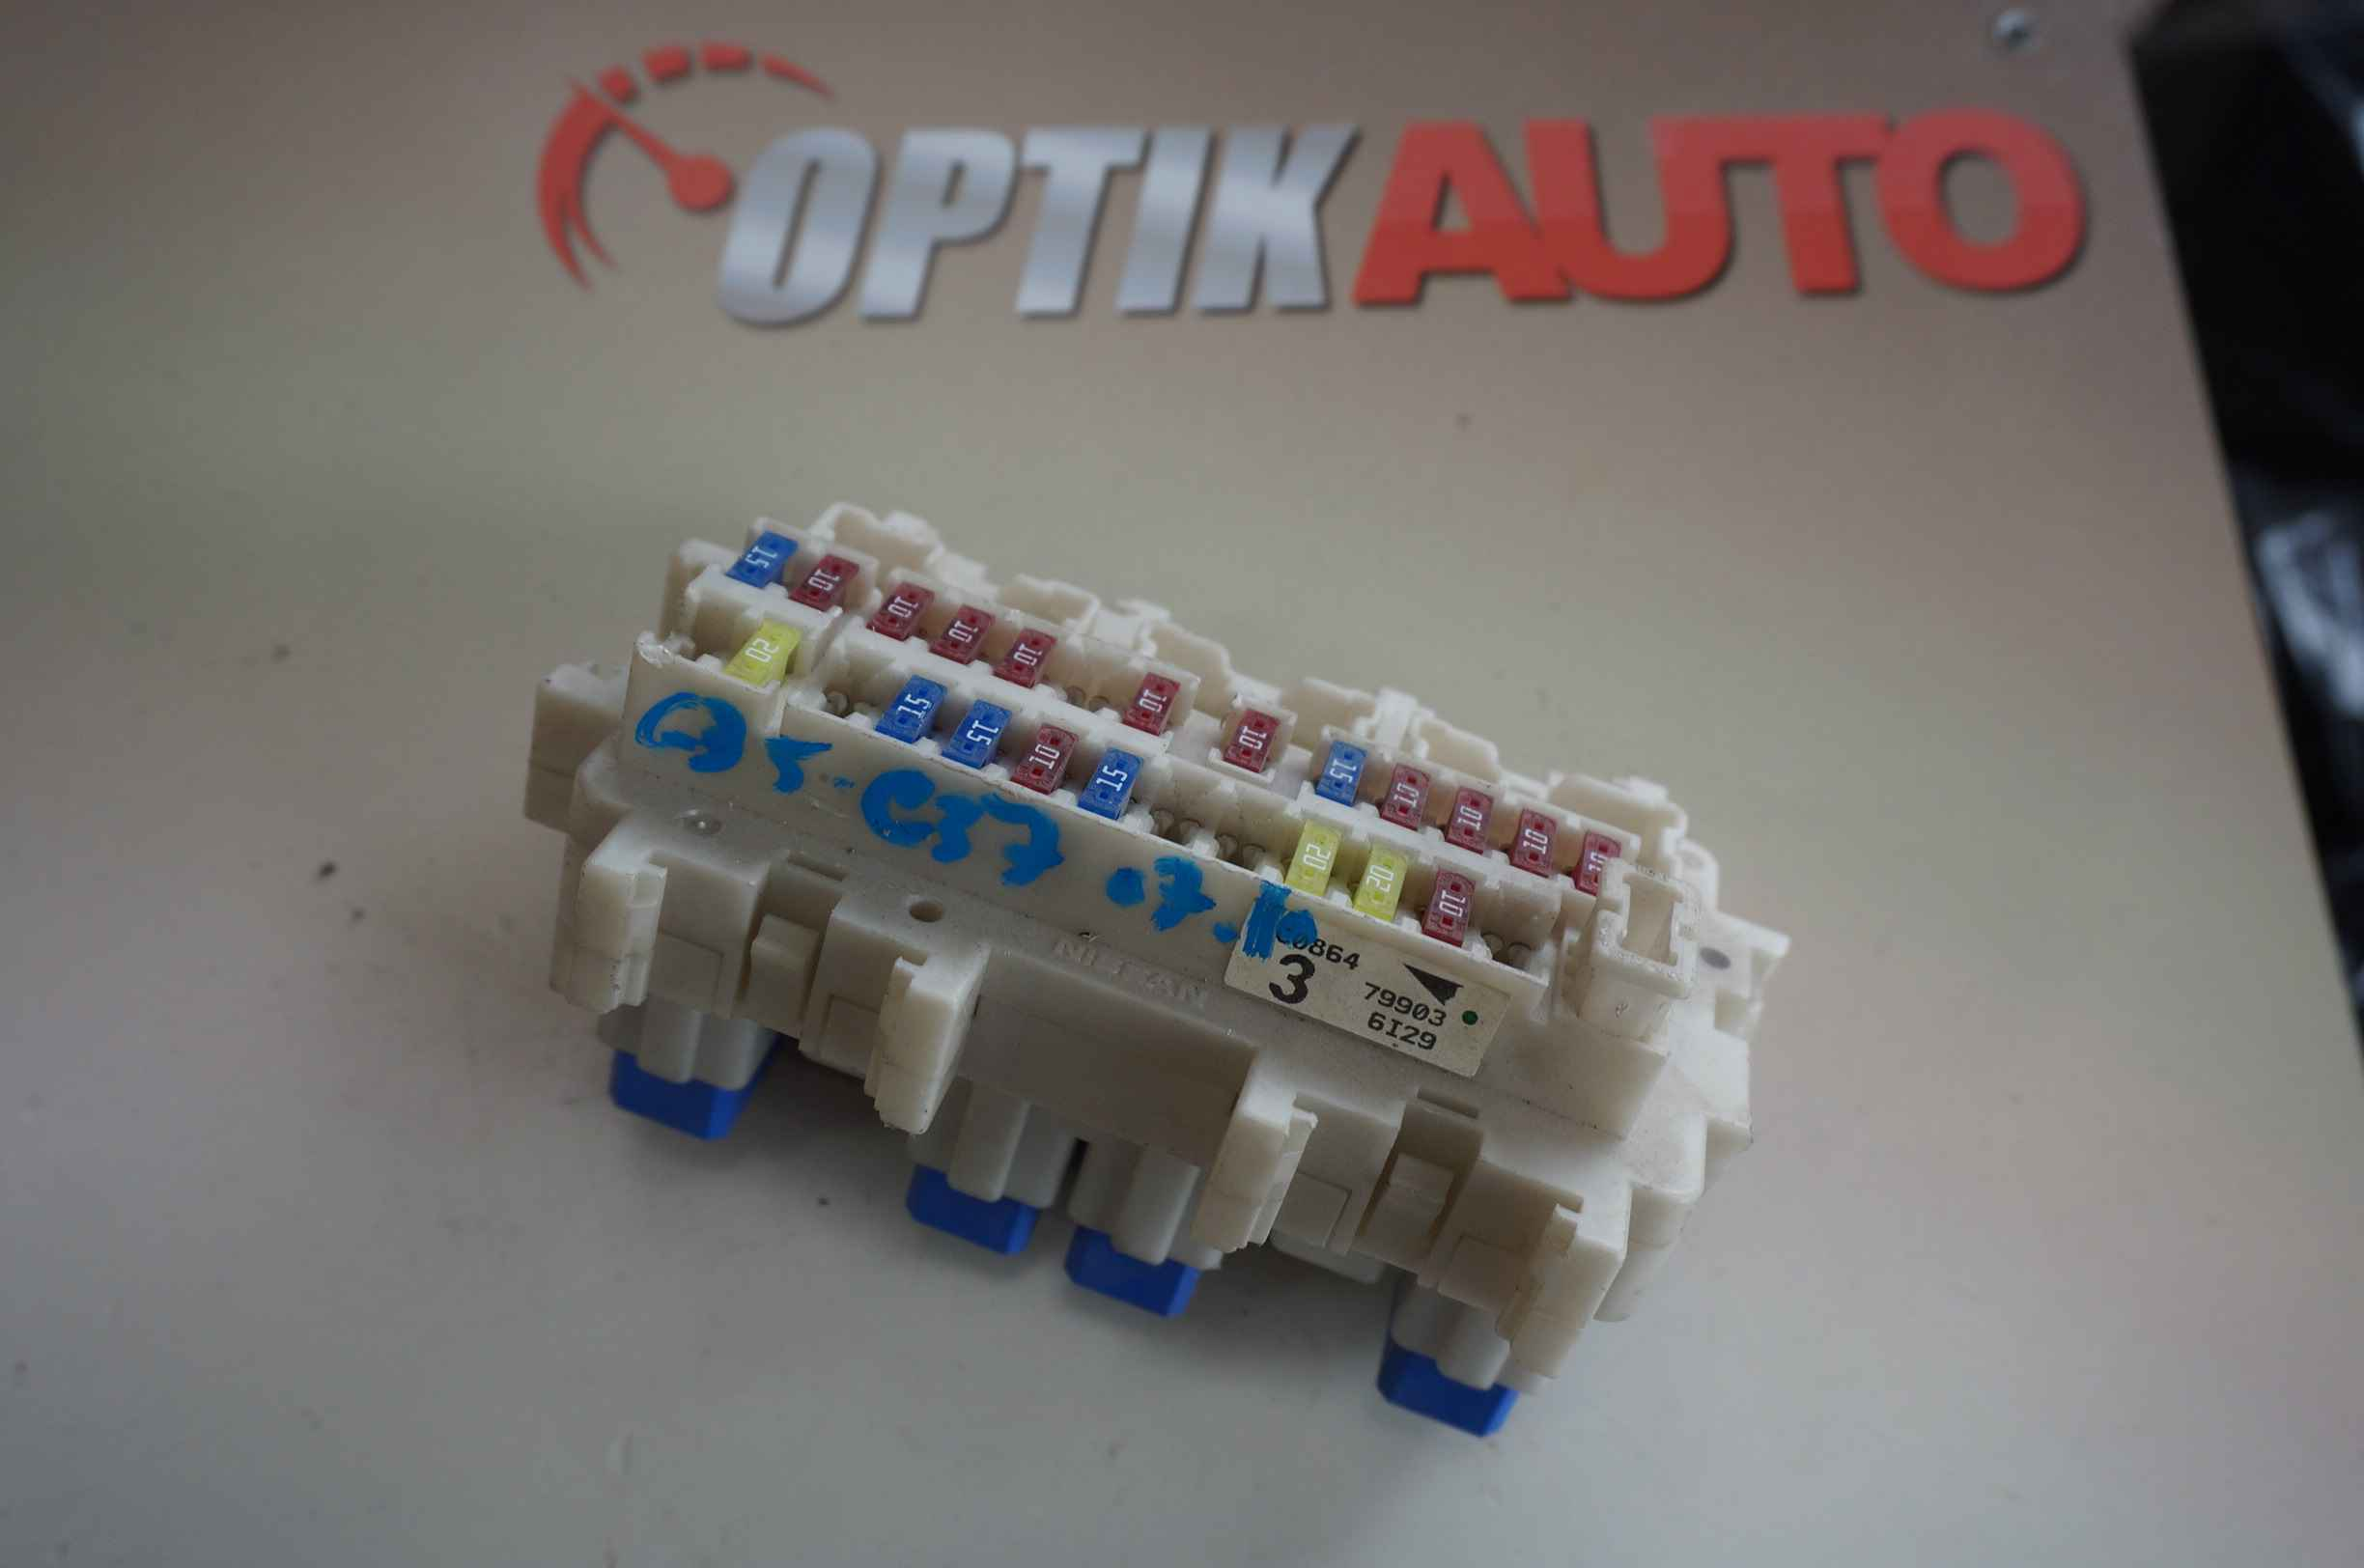 G37 Fuse Box Diagram Wiring Library Ford Focus 2007 Infiniti G35 2010 Cabin 2435079003 Optikauto 2000